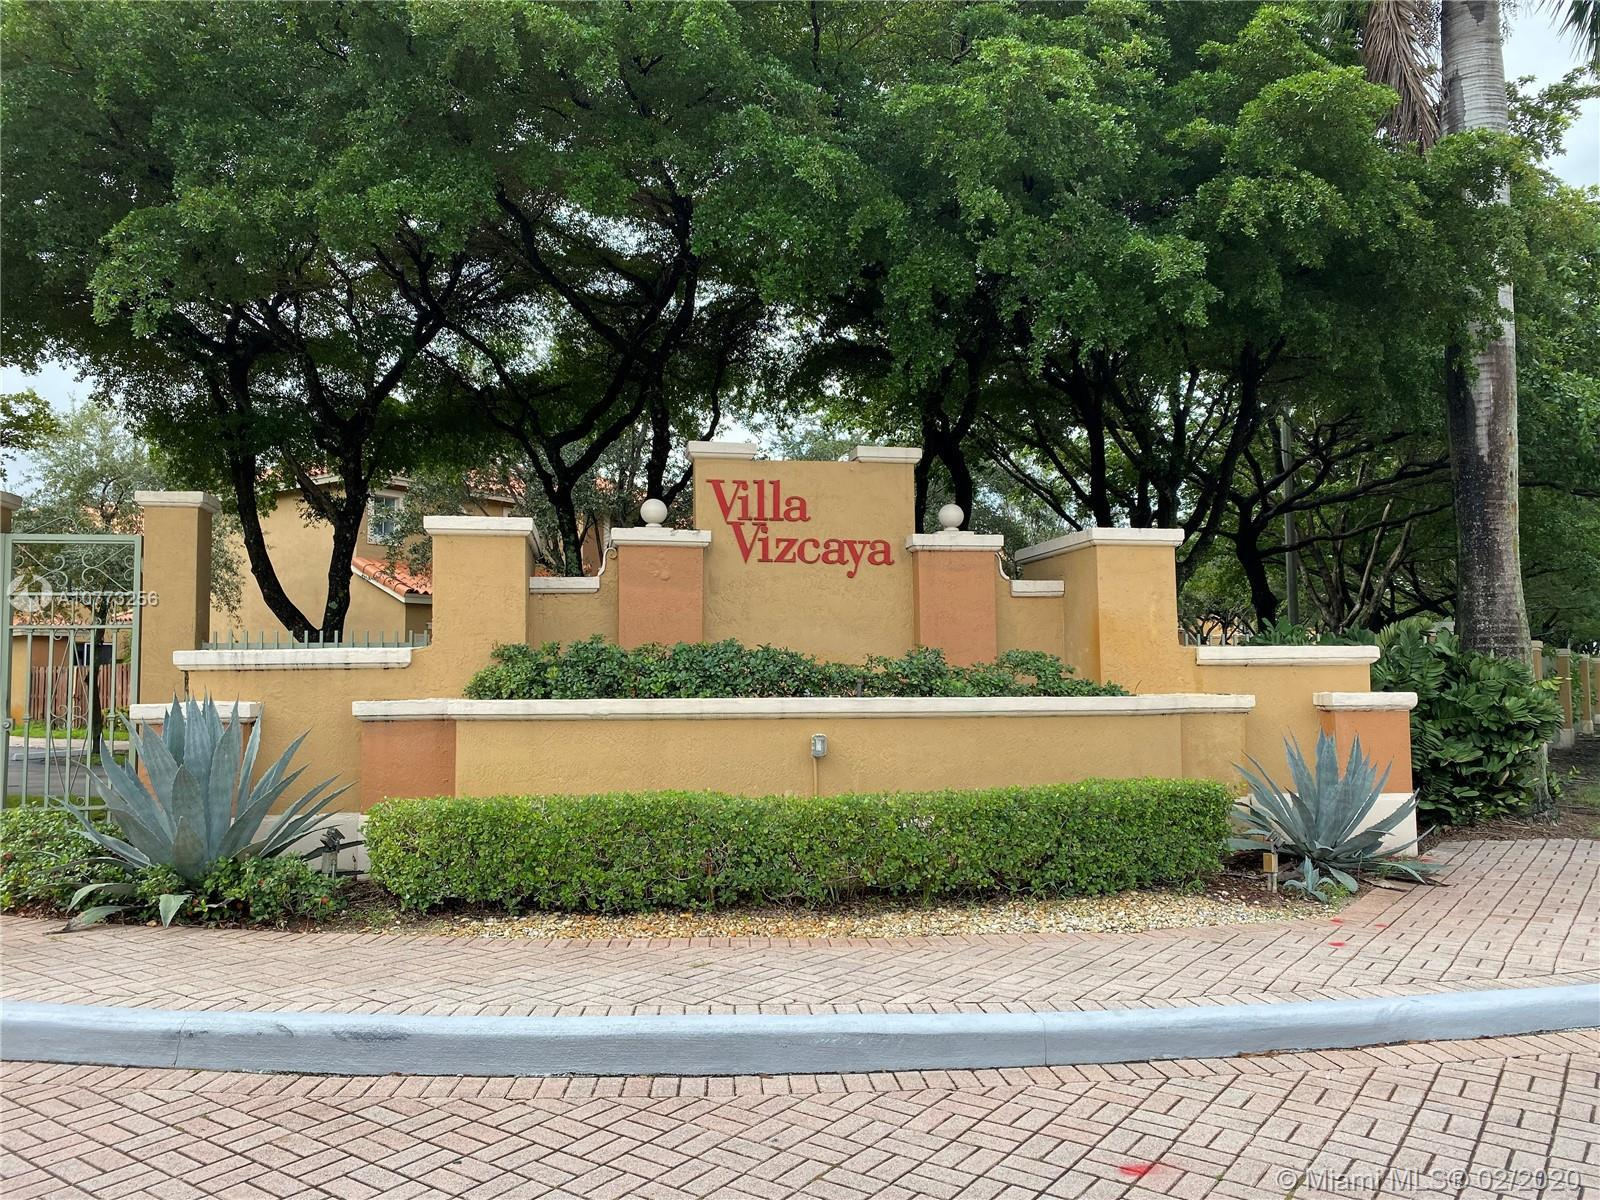 Beautiful townhome in Villa Vizcaya! Features 3 bedrooms, 2.5 baths, living-dining room, kitchen, family room, patio, 2 assigned parking spaces, community pool, child play area, guard gated and so much more! Bedrooms are upstairs. This is a corner unit with guest parking on the side. Credit/background check required with all offers. Dogs under 20 lbs allowed. Non-smokers only. ASSOCIATION ONLY ALLOWS 2 CARS.